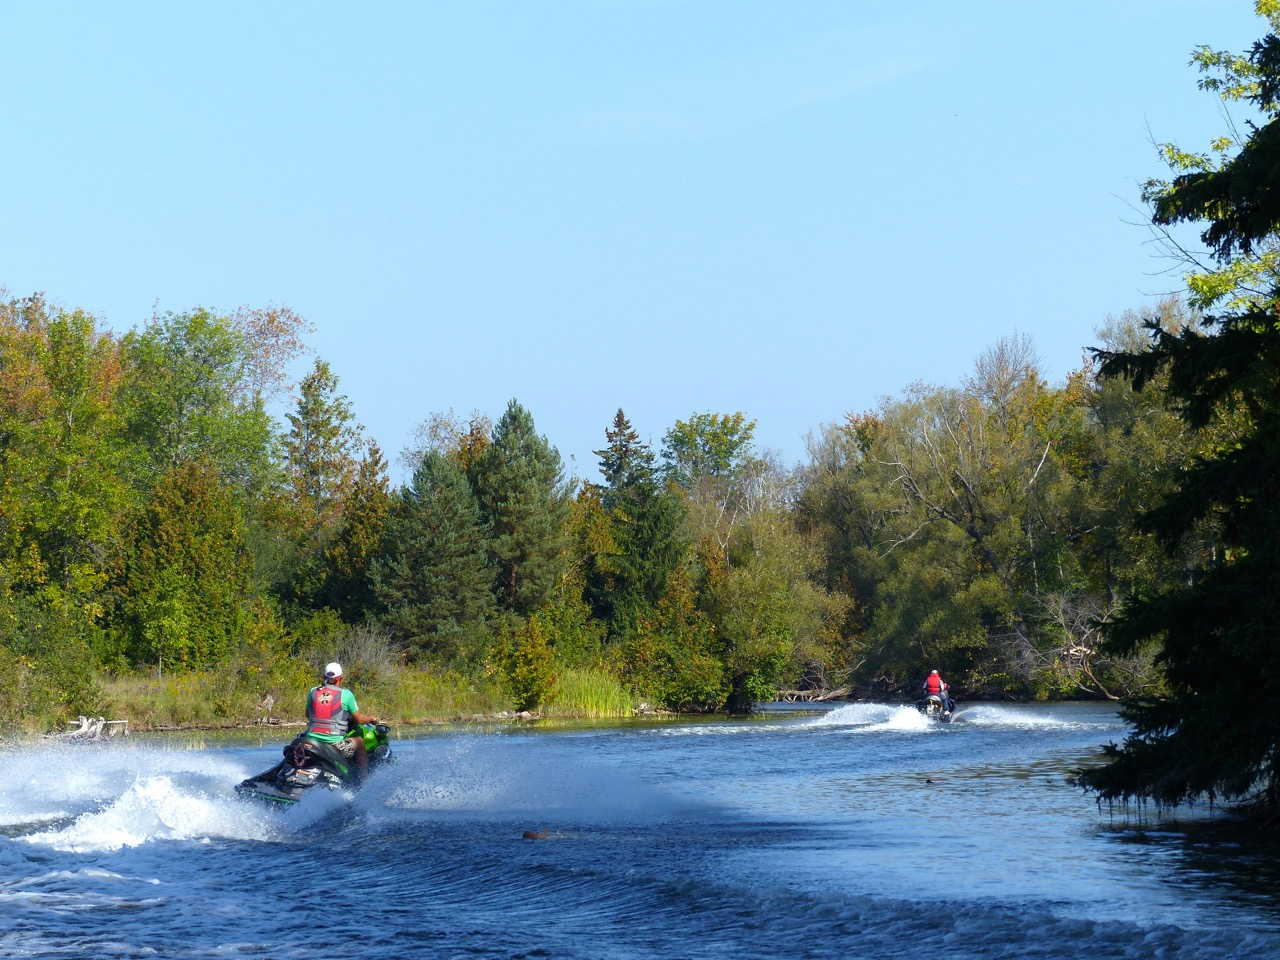 Shoreline speed restrictions are part of Ontario boating regs